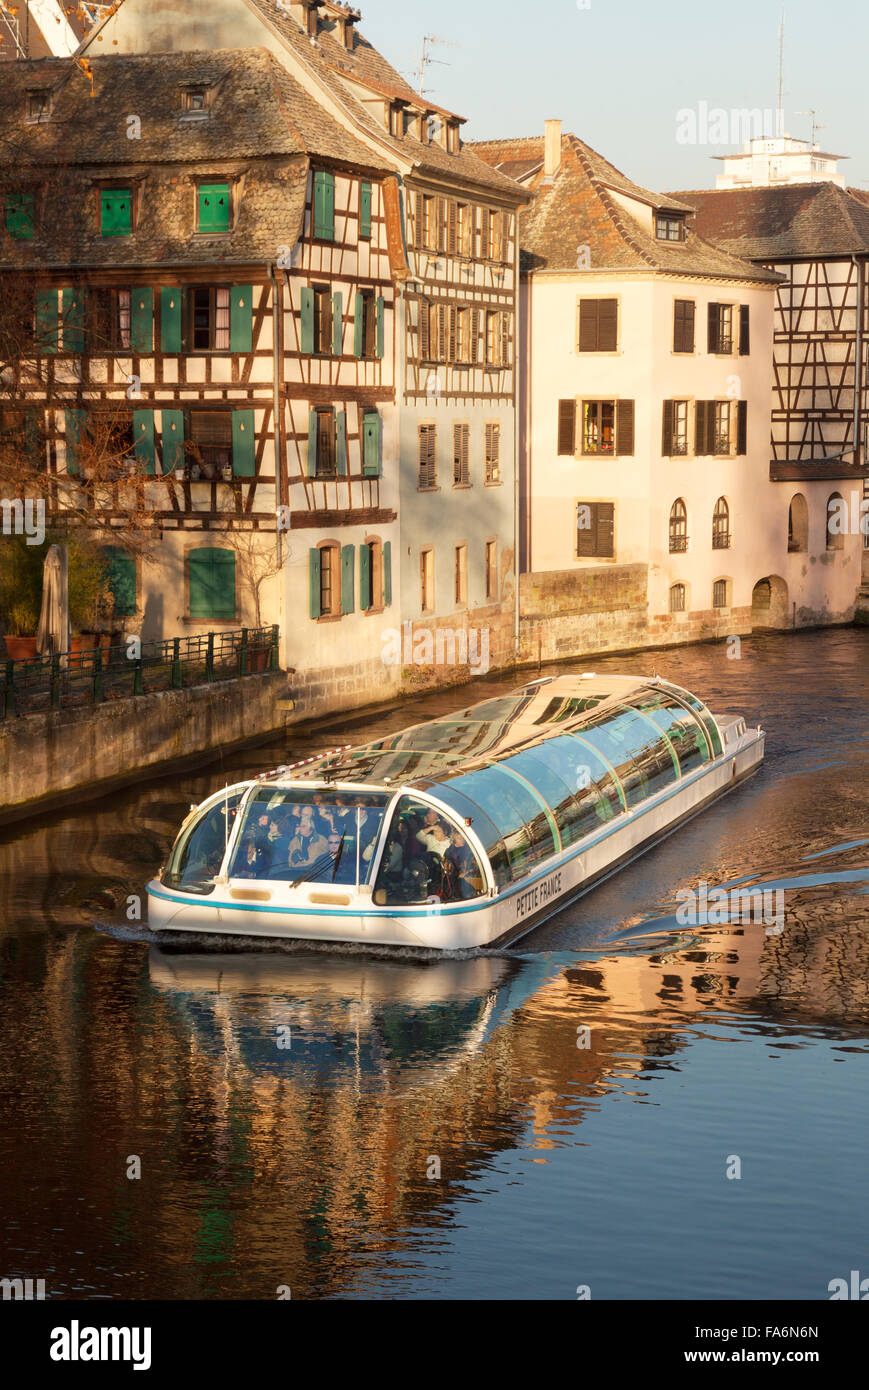 Early morning tourist boat tour on the River Ill, Petite France, Strasbourg, France Europe - Stock Image